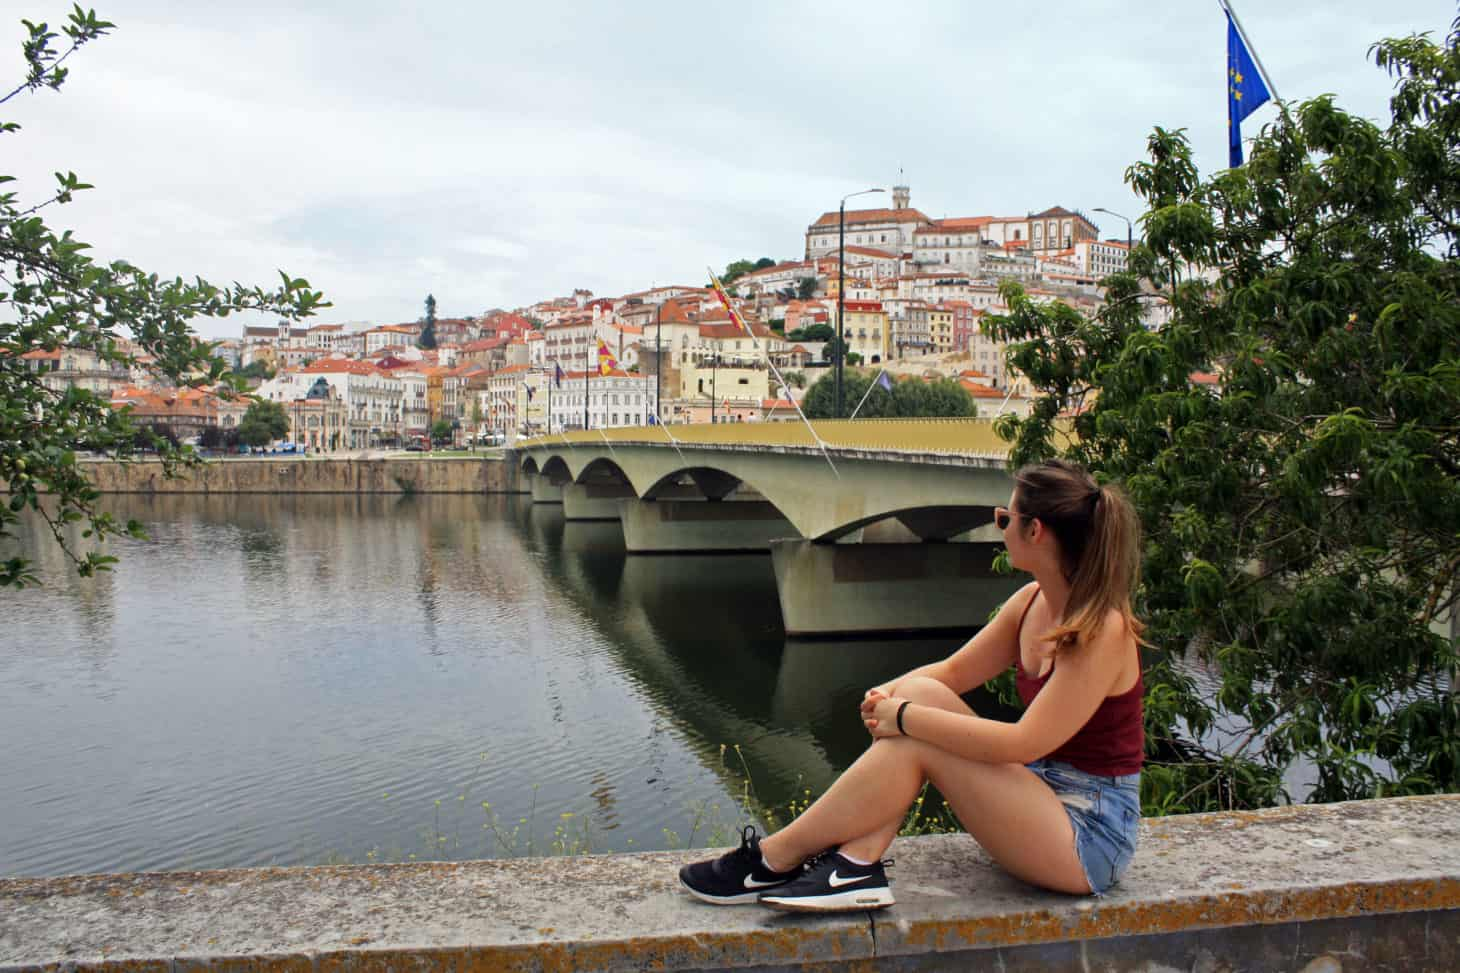 Looking at Coimbra over the Mondego River